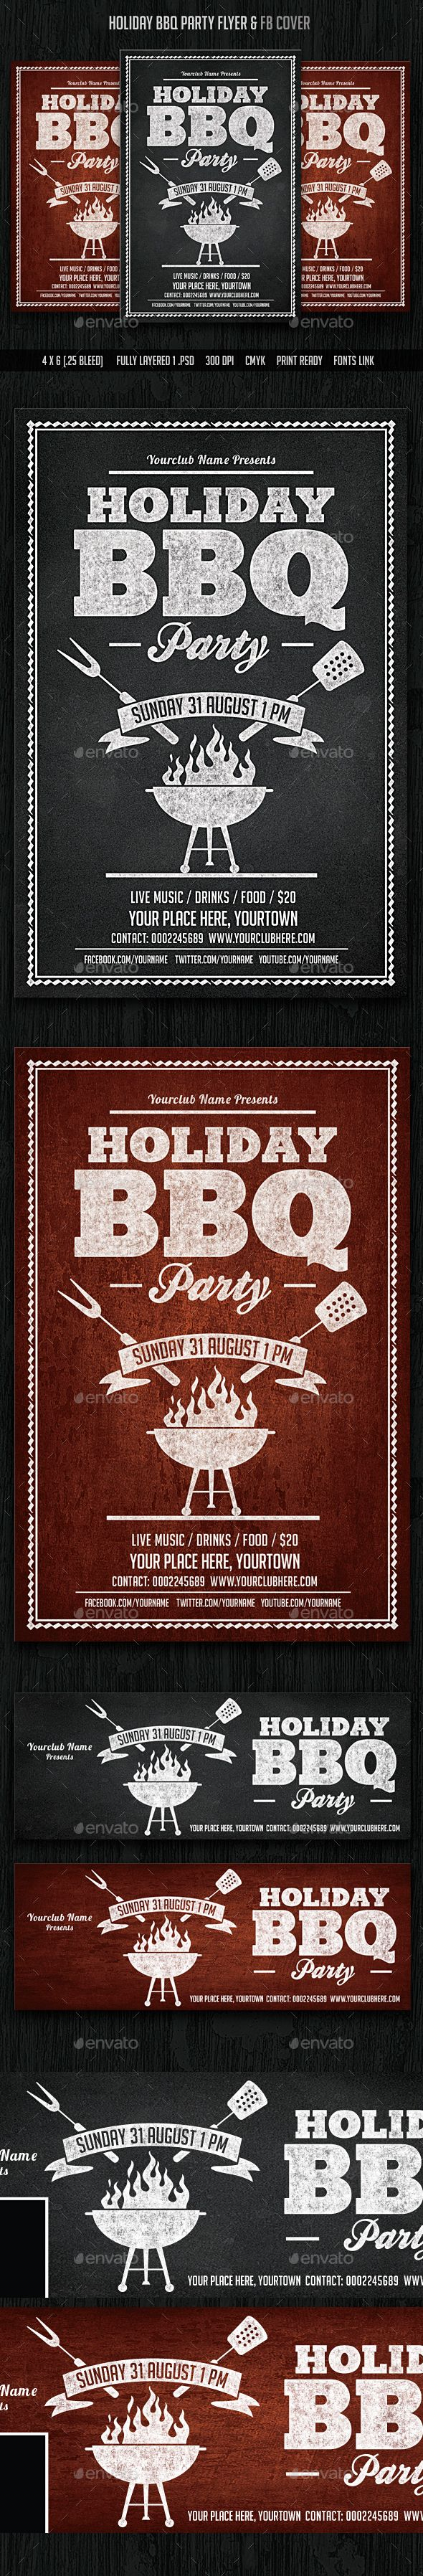 Holiday BBQ Party Flyer & Facebook Cover Template PSD #design Download: http://graphicriver.net/item/holiday-bbq-party-flyer-facebook-cover/14119659?ref=ksioks